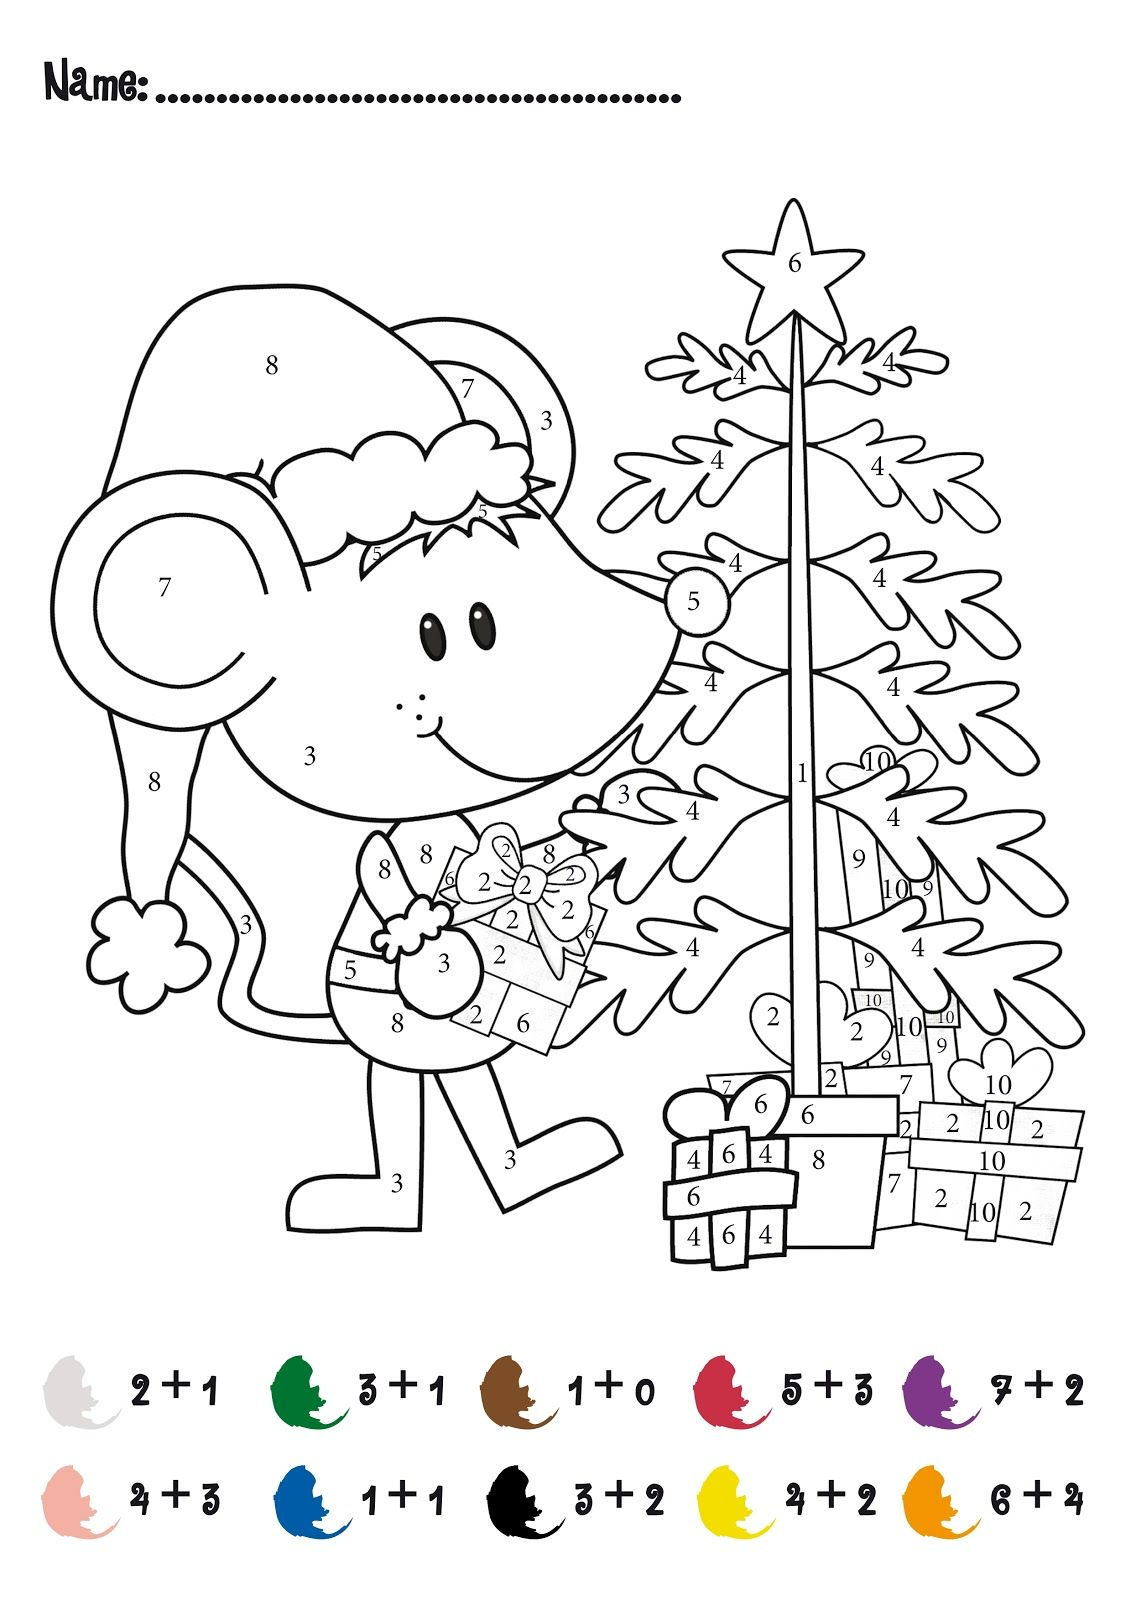 Worksheets Math Christmas Worksheets worksheet 680880 christmas math worksheets and color by number free worksheets